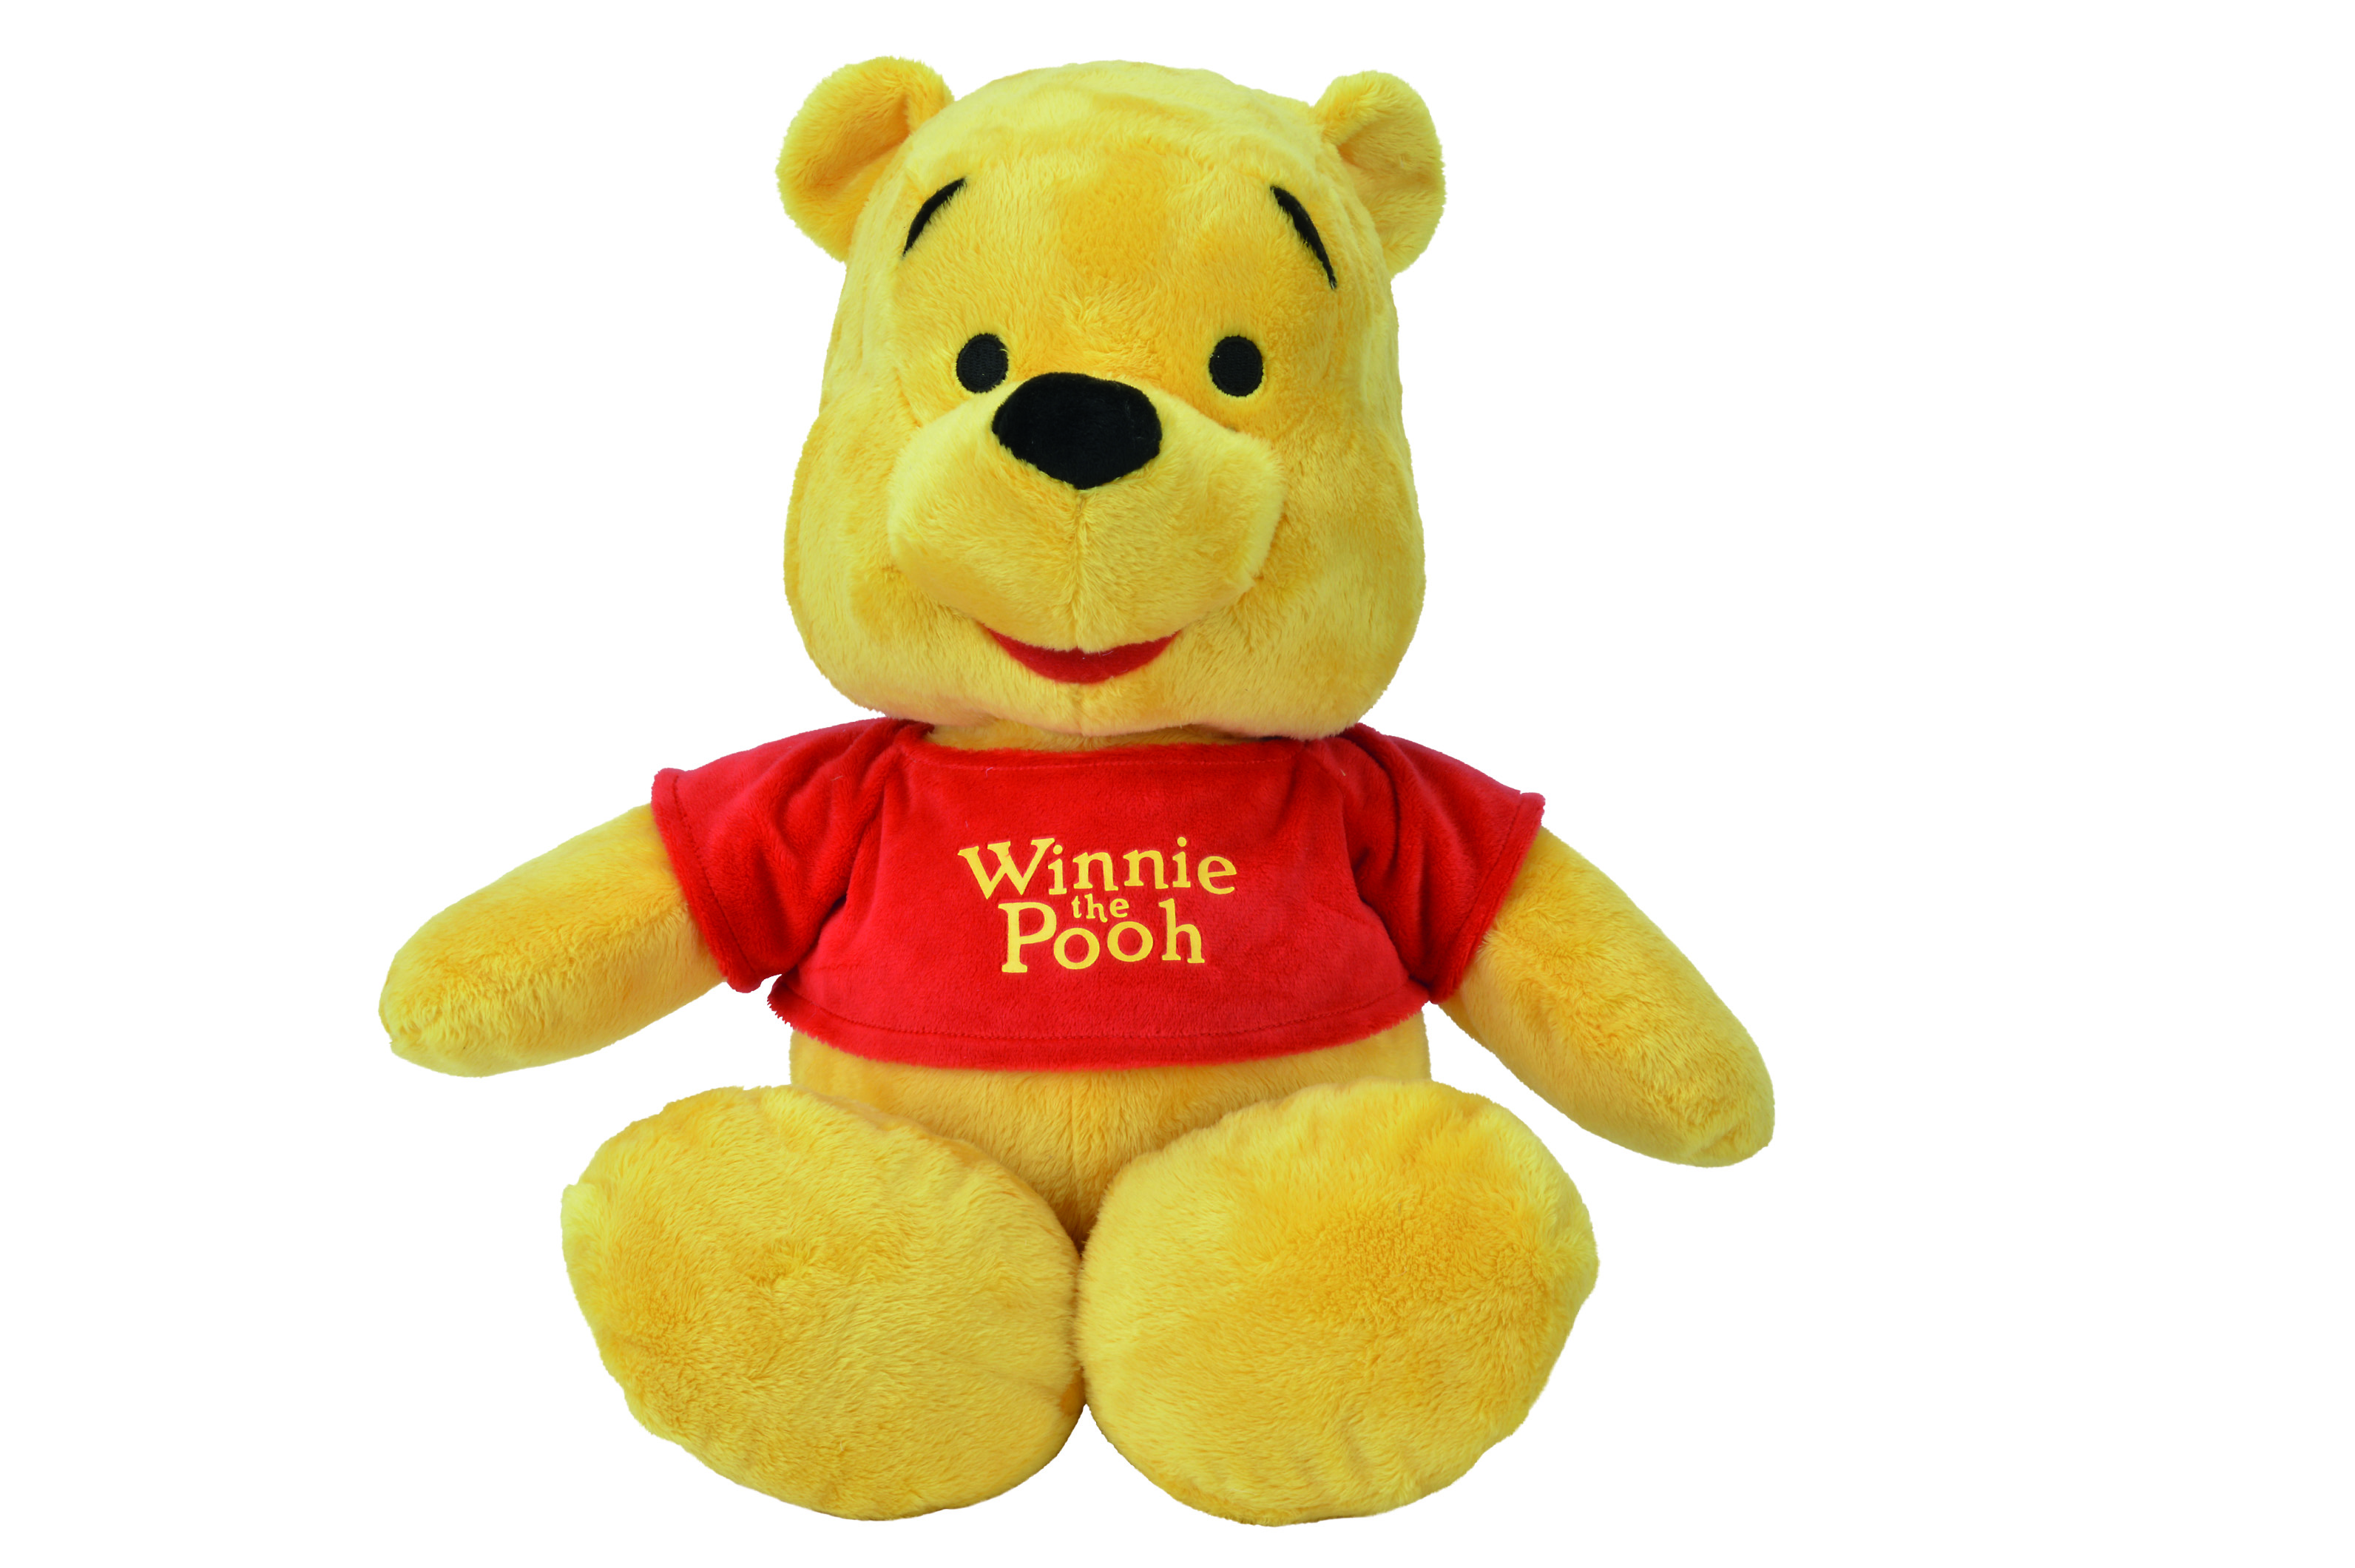 winnie pooh kuscheltier winnie the pooh 50 cm g nstig. Black Bedroom Furniture Sets. Home Design Ideas